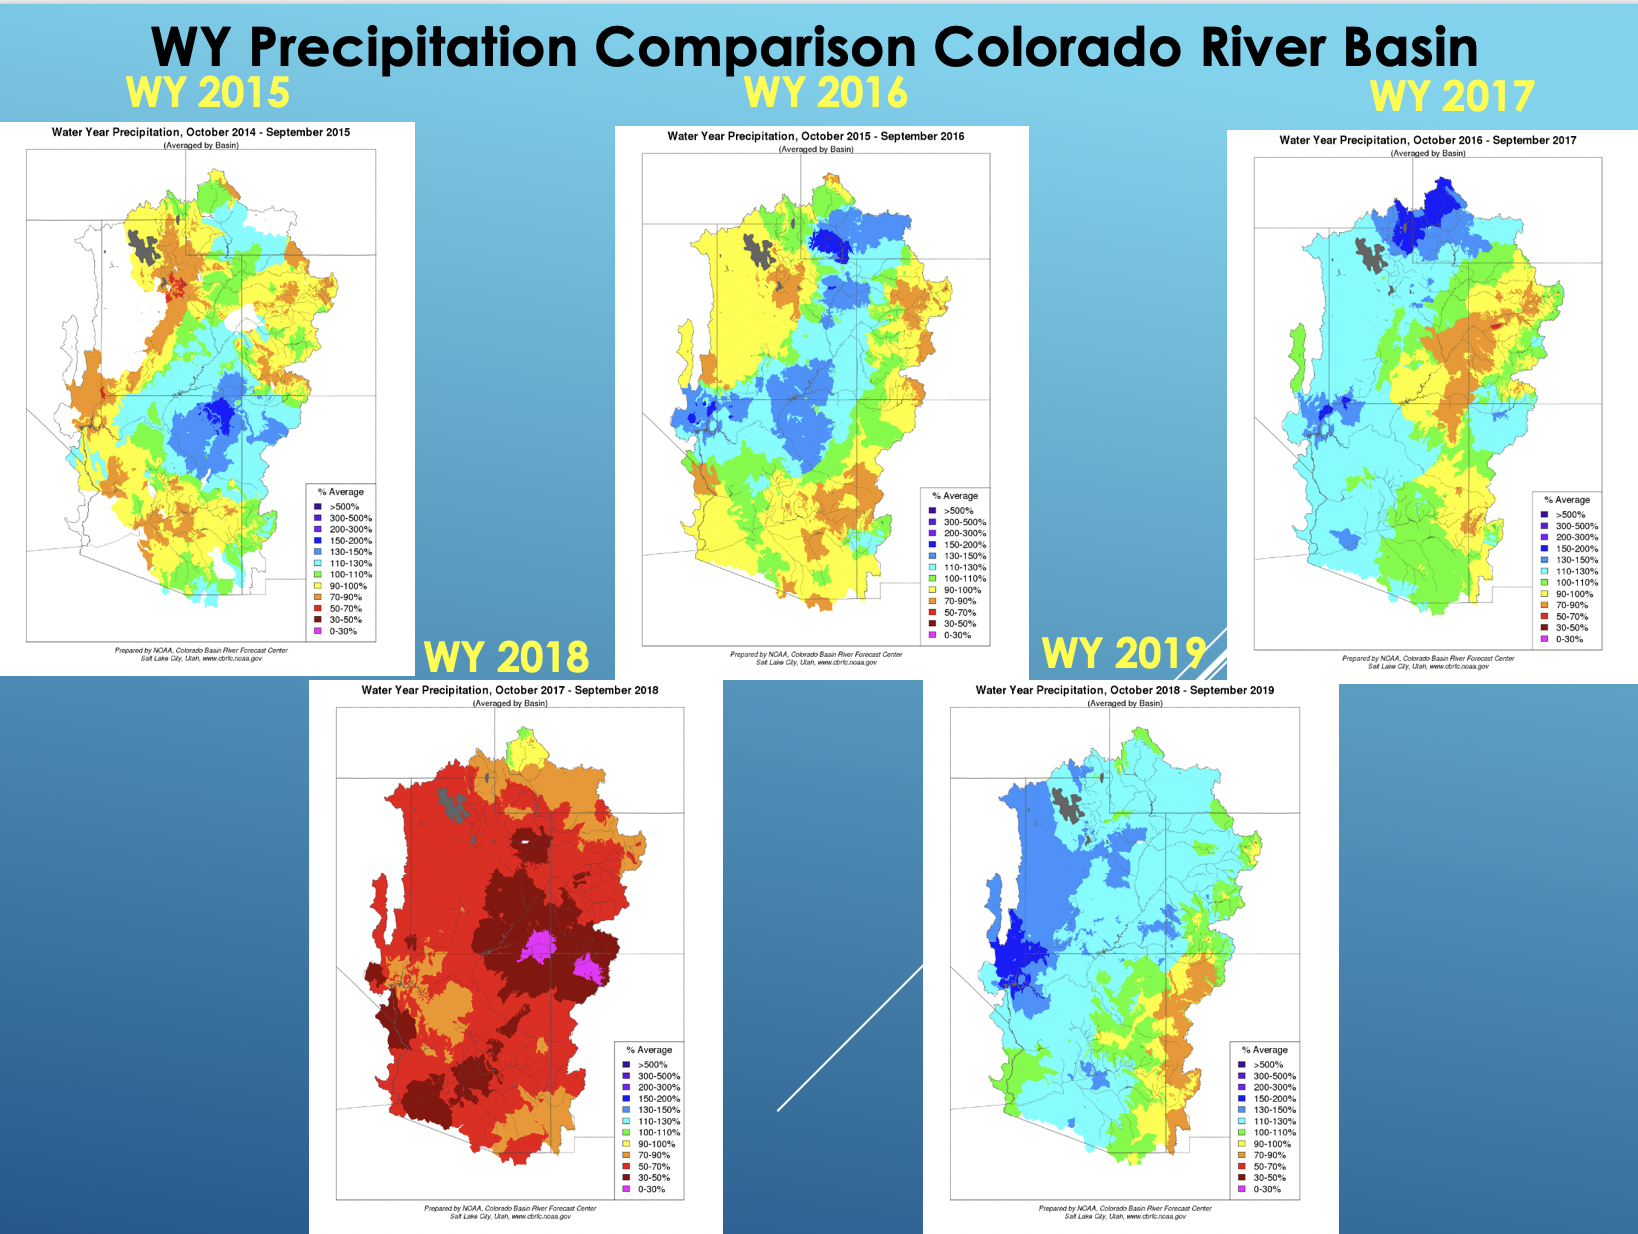 WY Precipitation Comparison Colorado River Basin